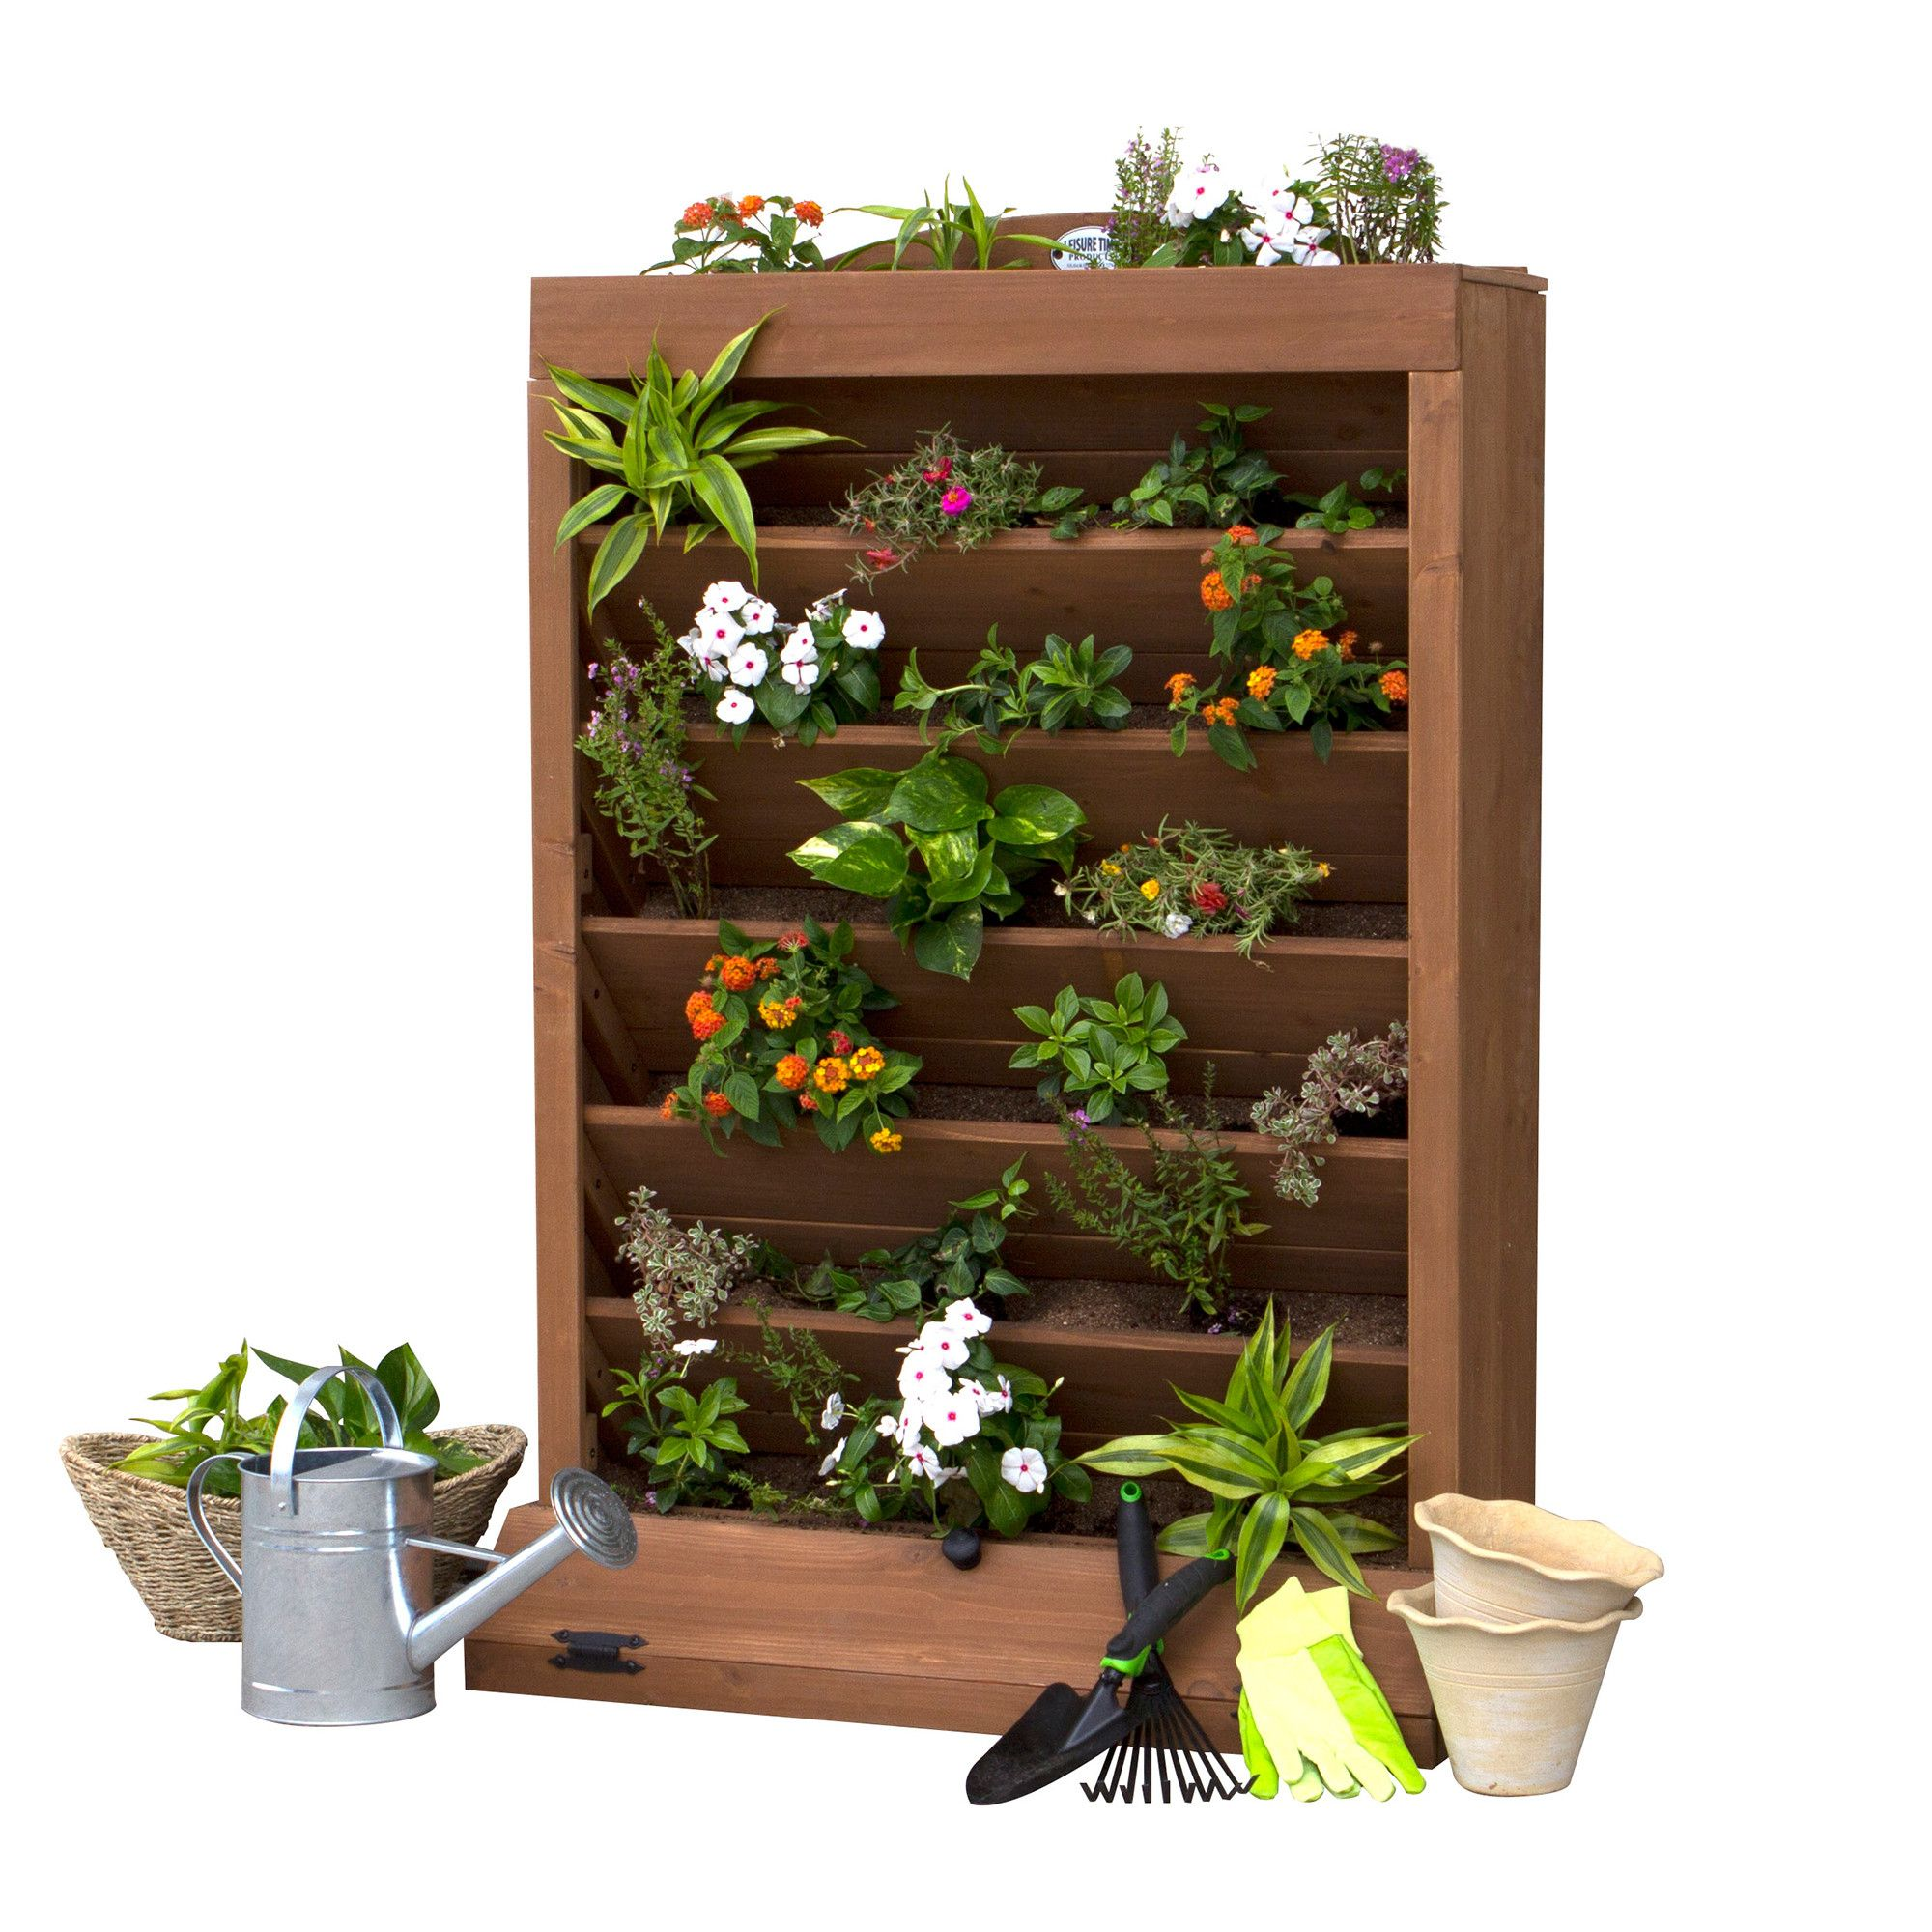 patio garden vertical system planter on hydroponic box planters pack wall of boxes